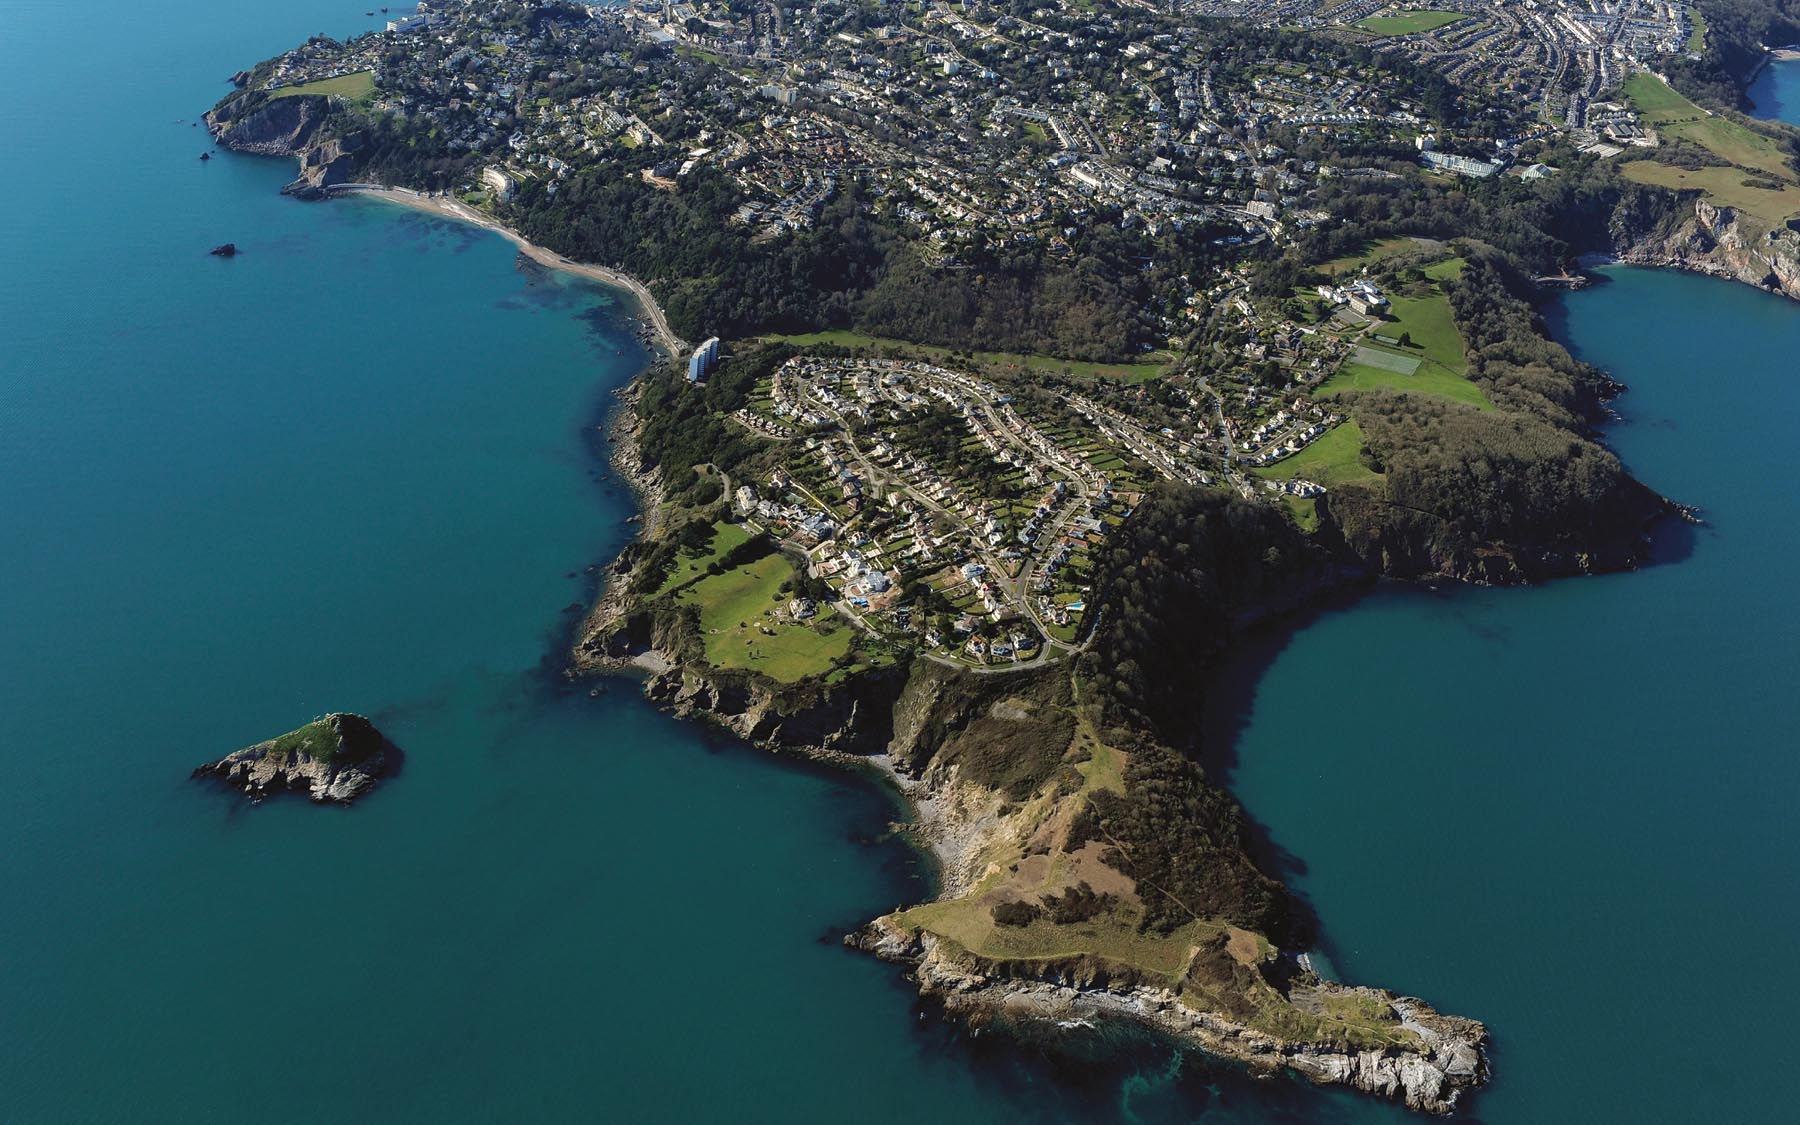 Torquay from above